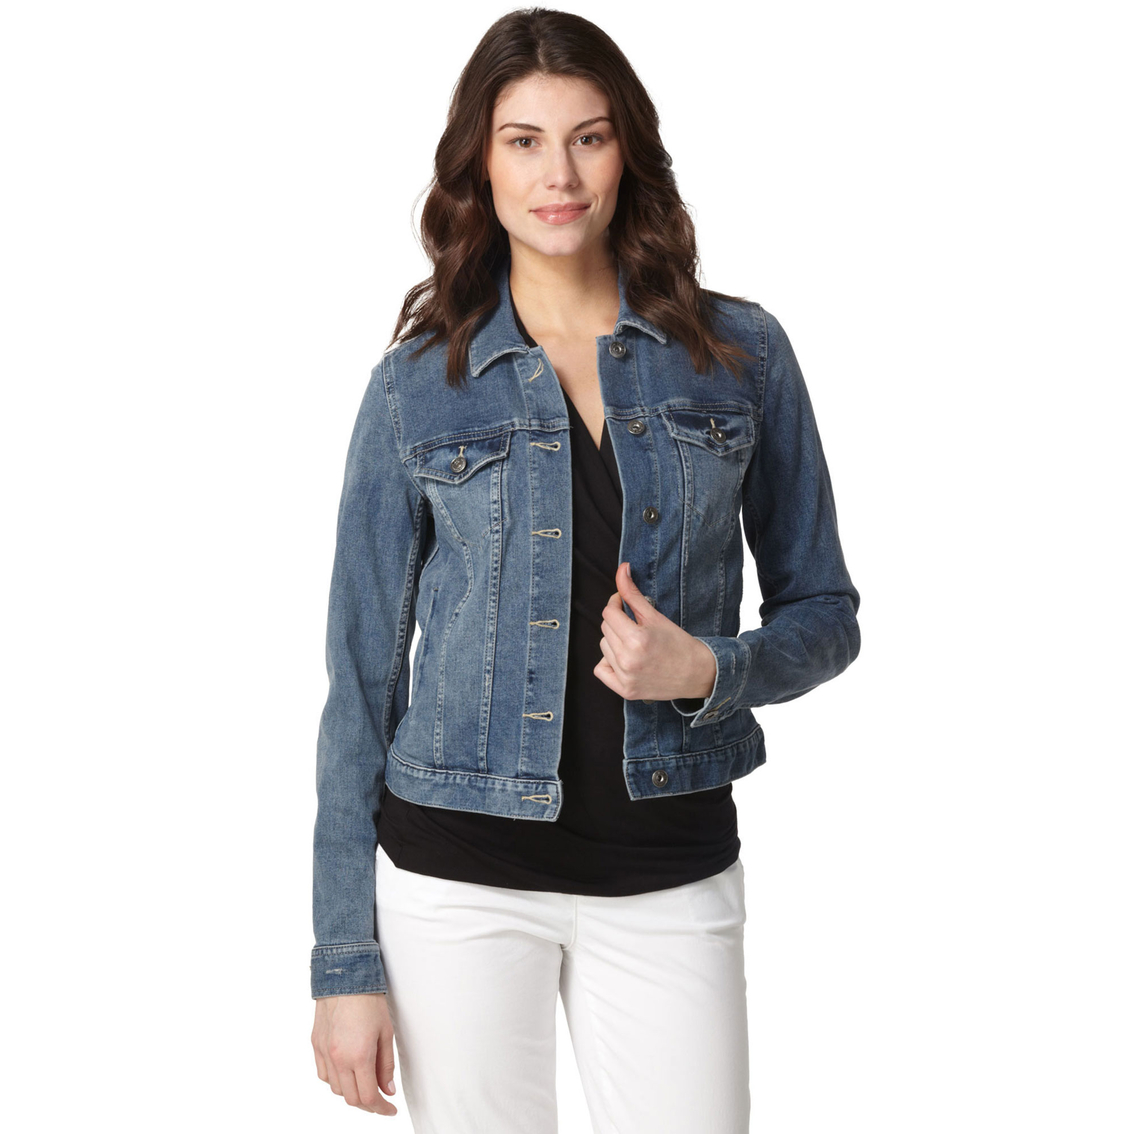 c5ade86f49 Two By Vince Camuto Jean Jacket